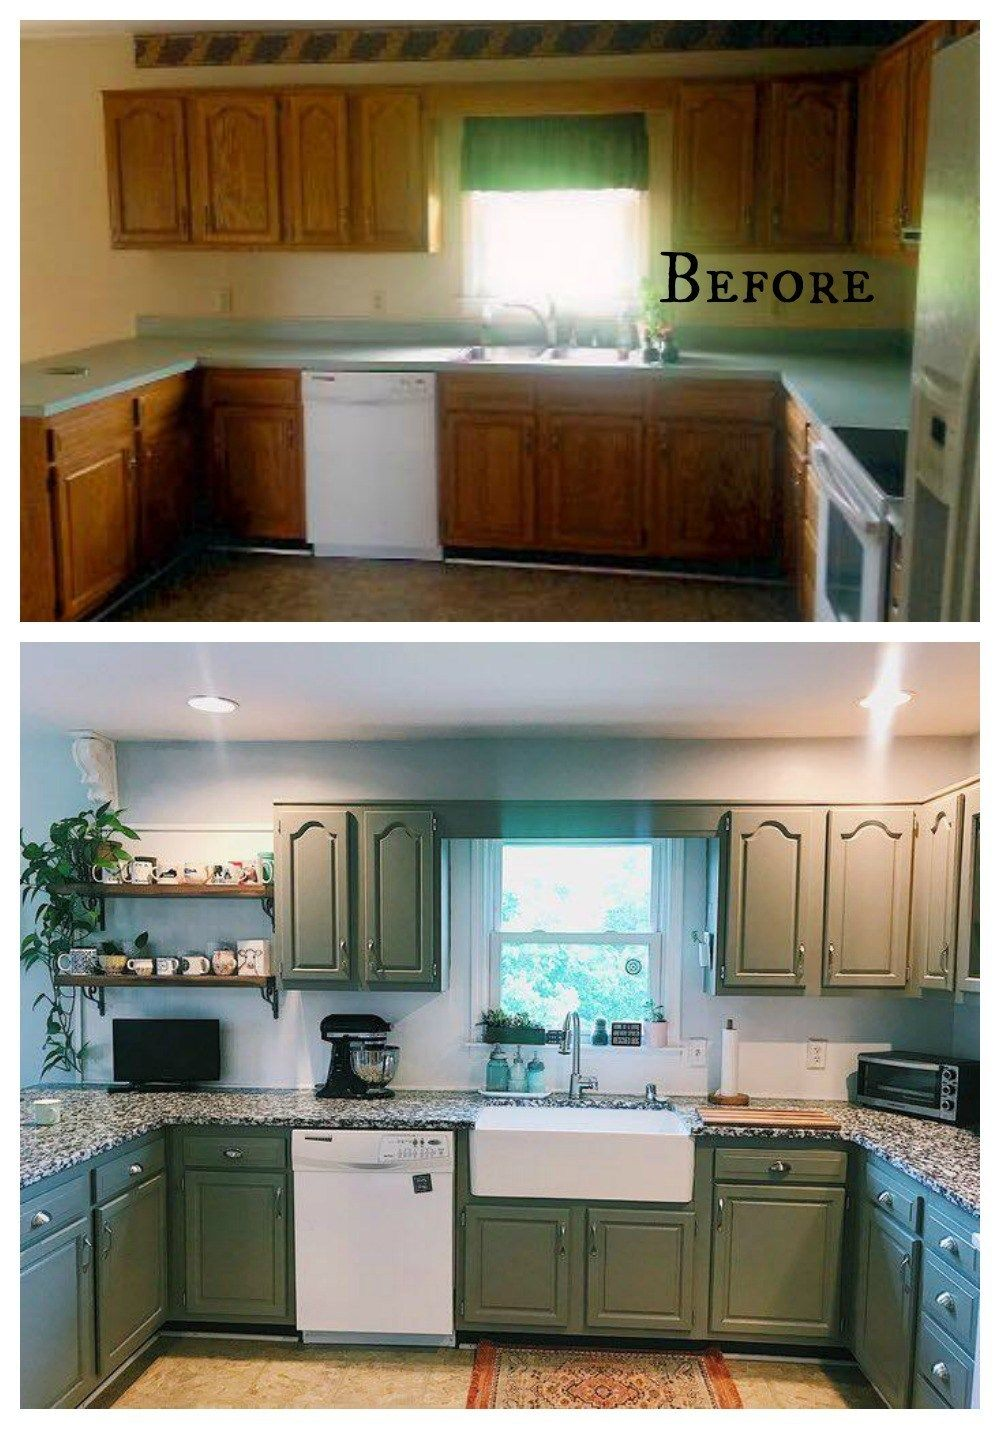 27 Inspiring Kitchen Makeovers- Before and After – Nesting With Grace